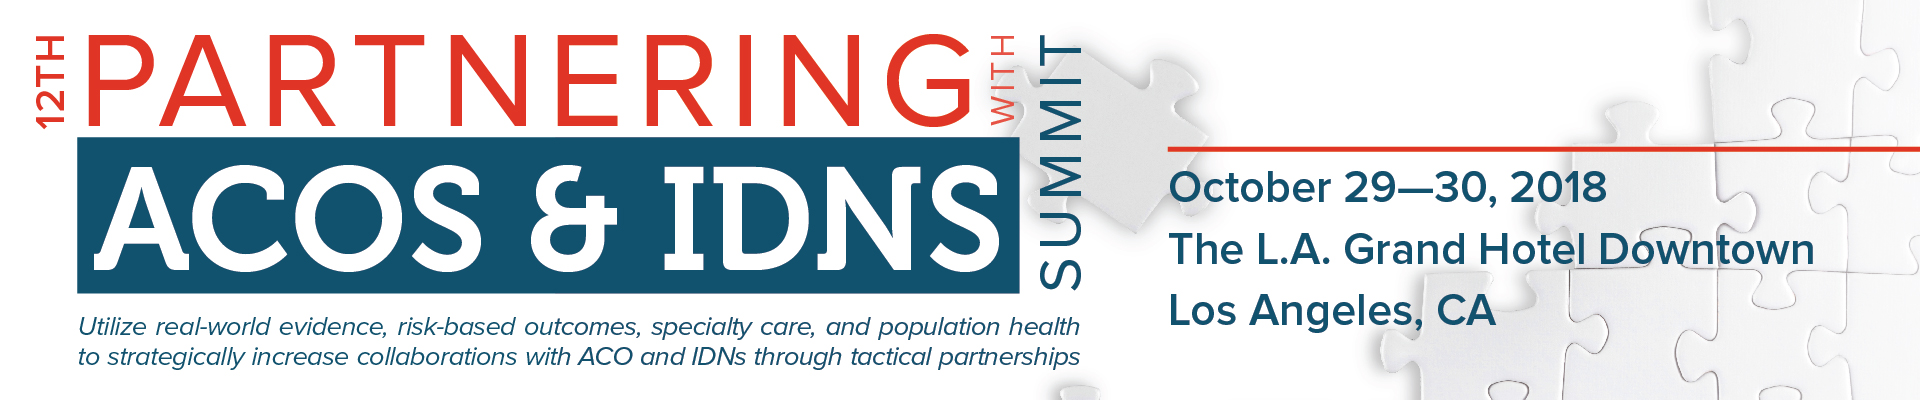 12th Partnering with ACOs & IDNs Summit